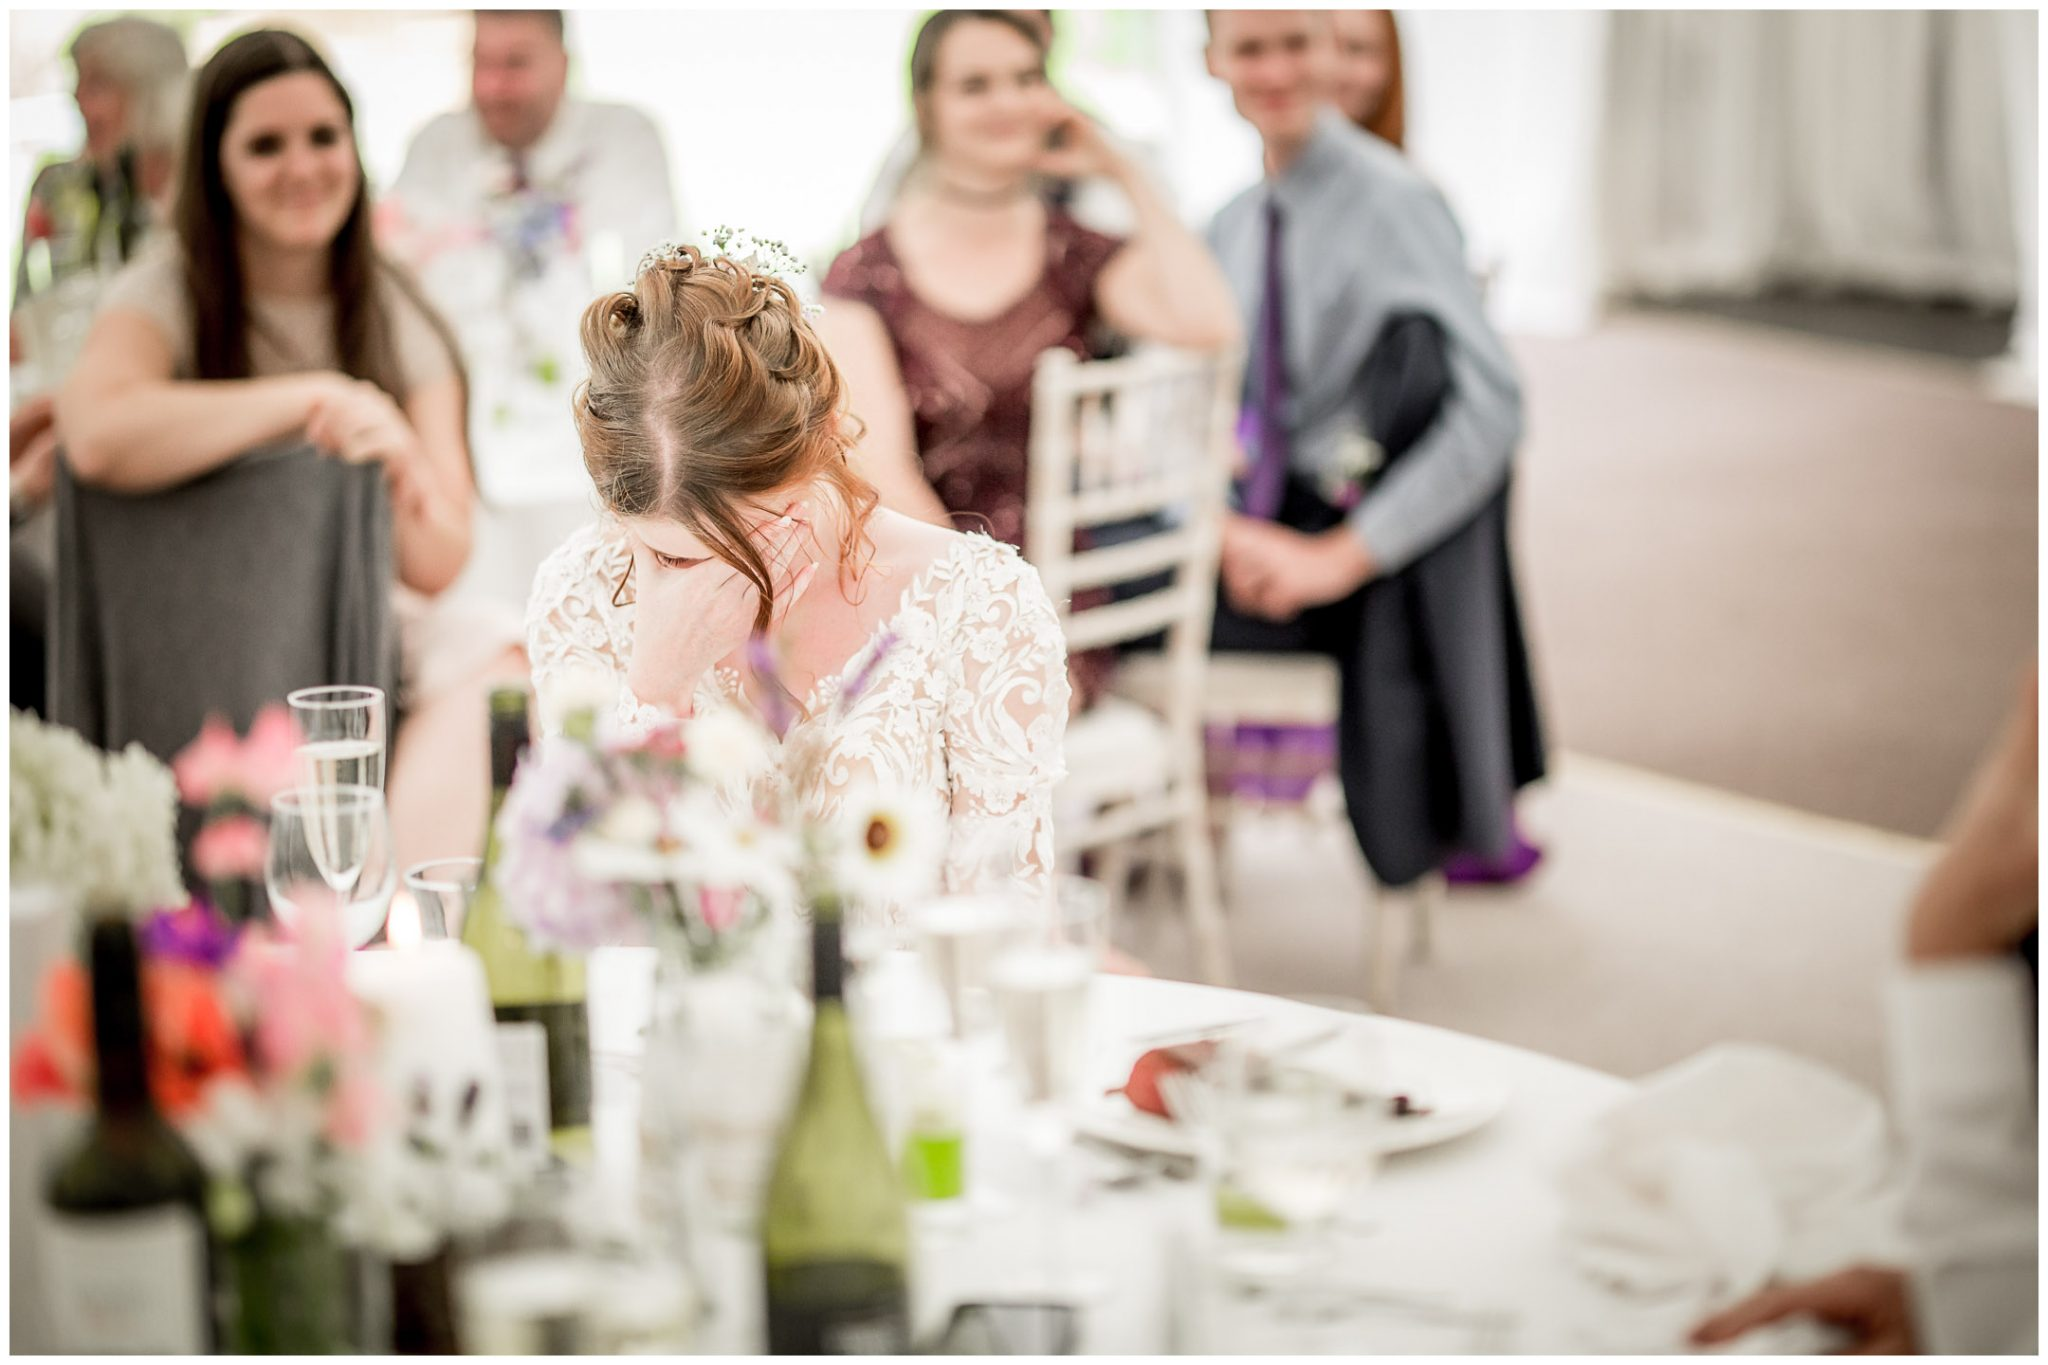 The bride reacts with embarrassment to one of the speeches